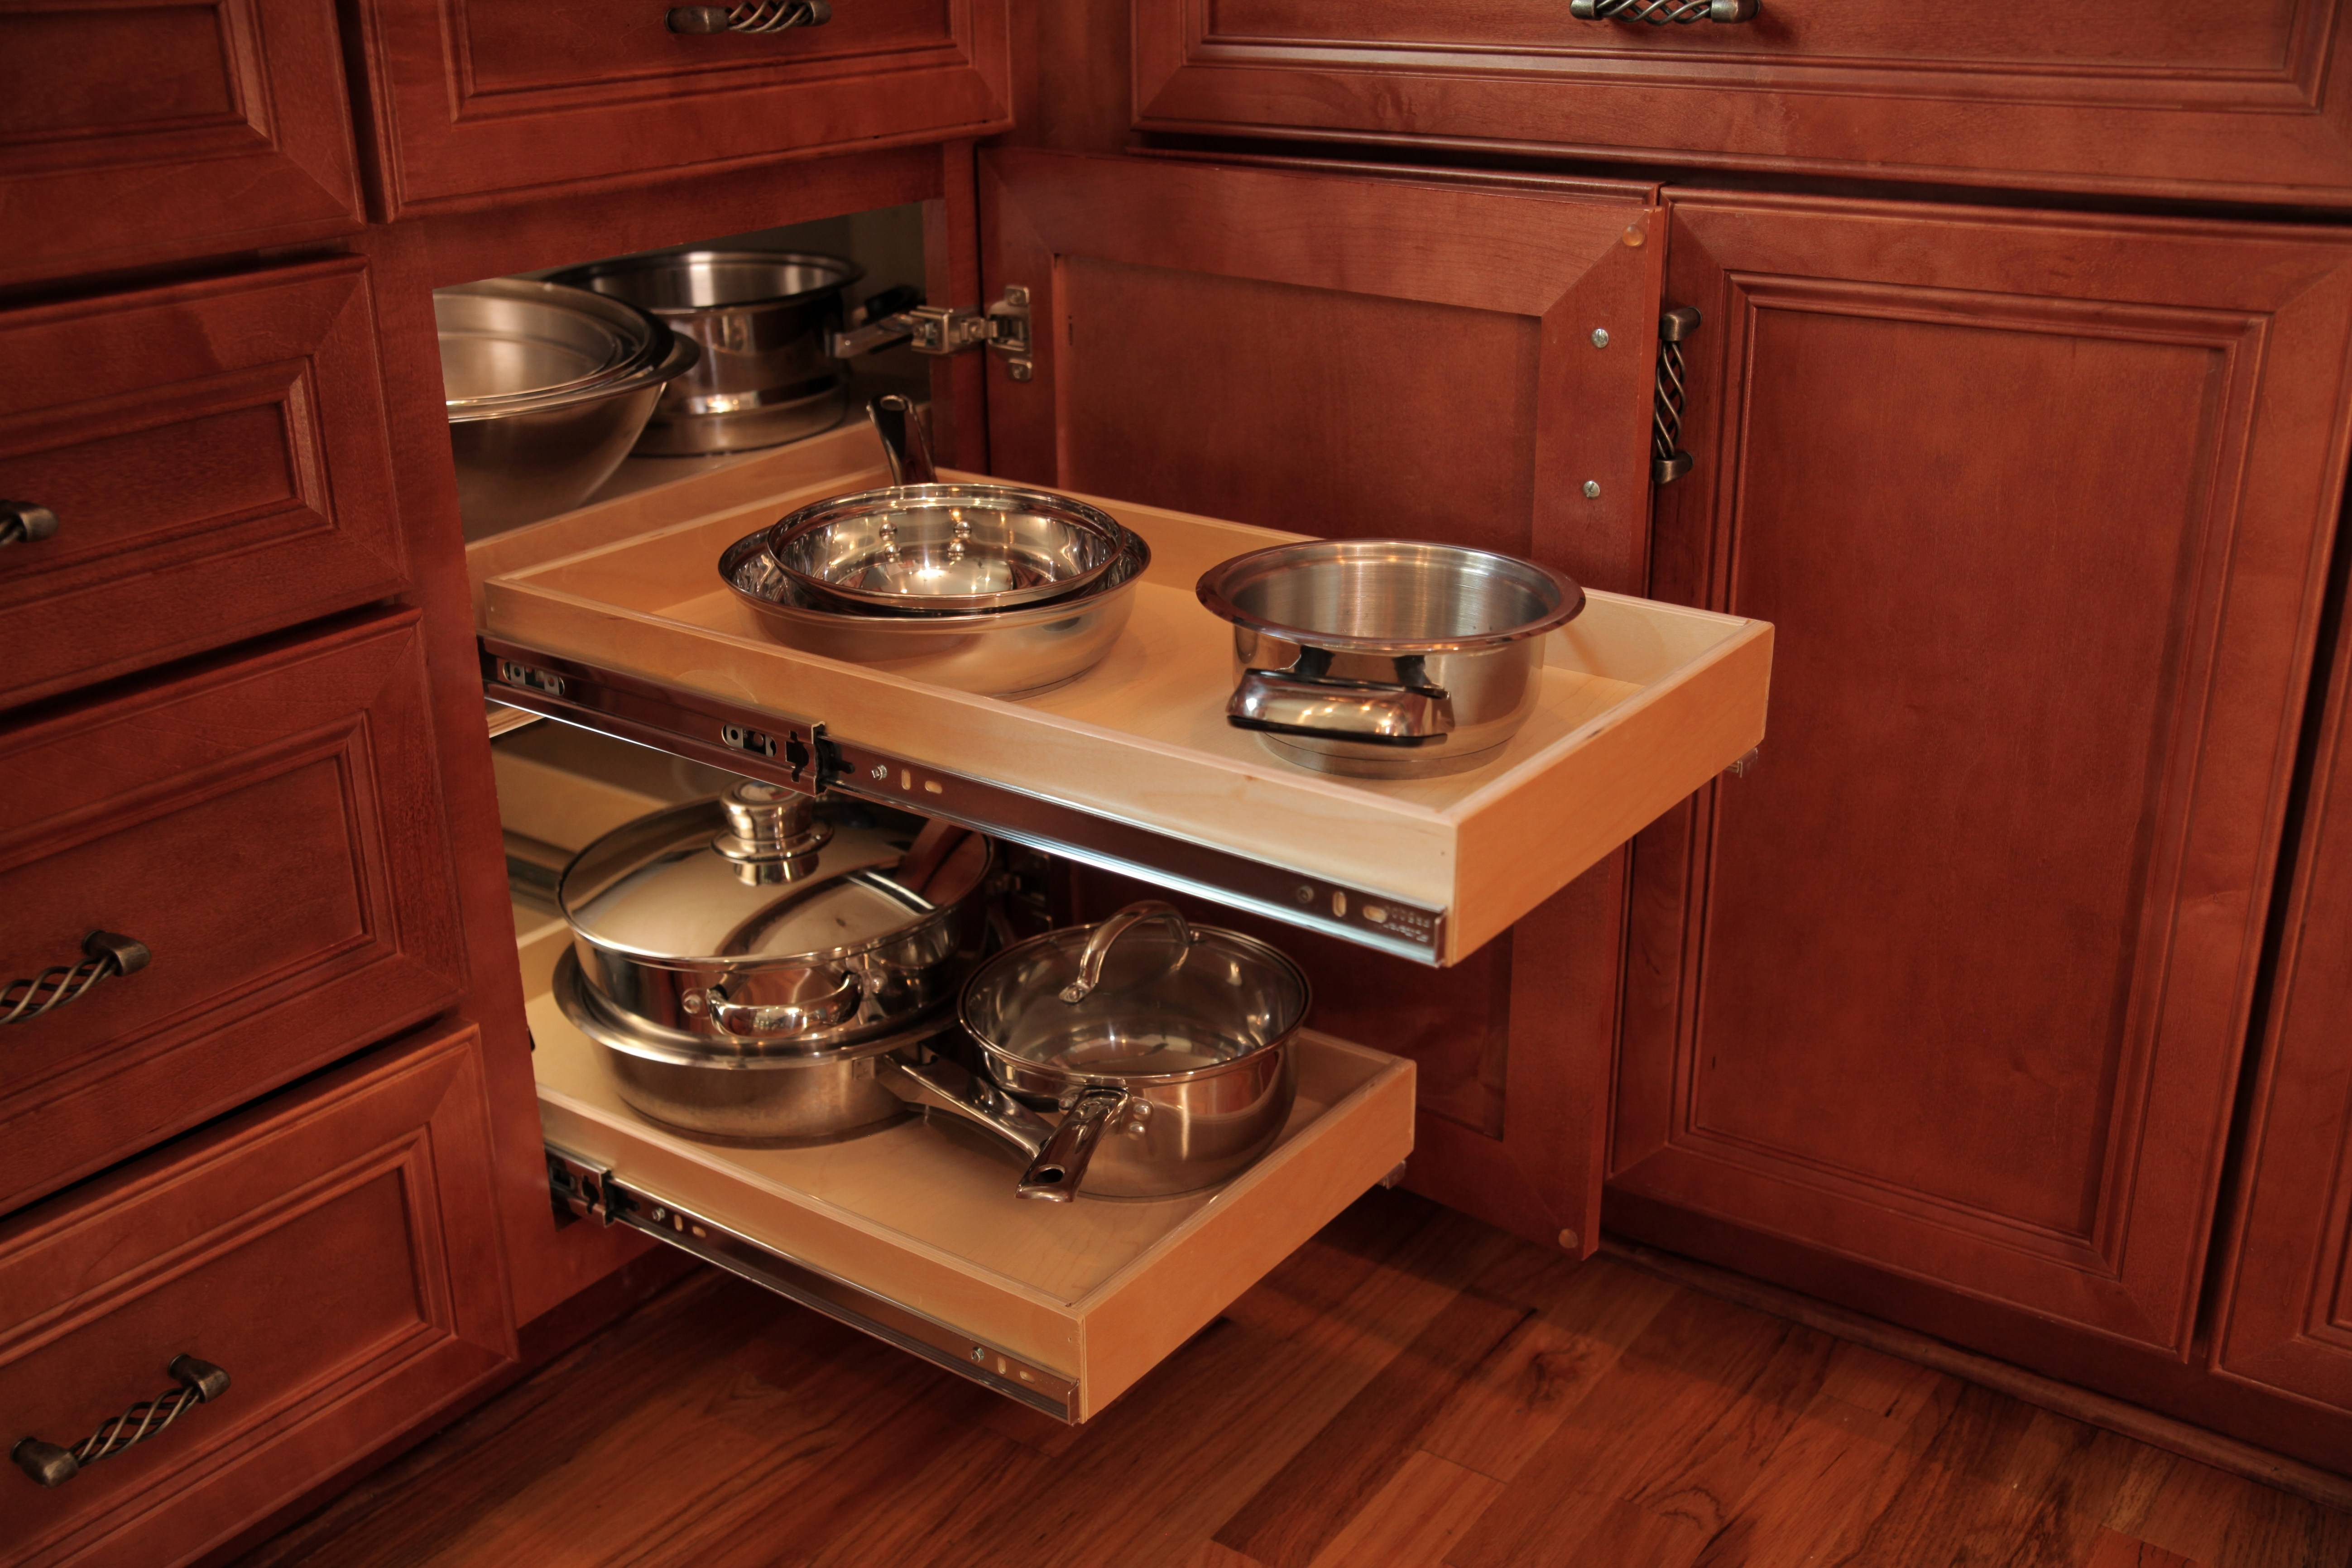 kitchen cabinet storage solutions awesome upper corner kitchen cabinet ideas exitallergy of kitchen cabinet storage solutions